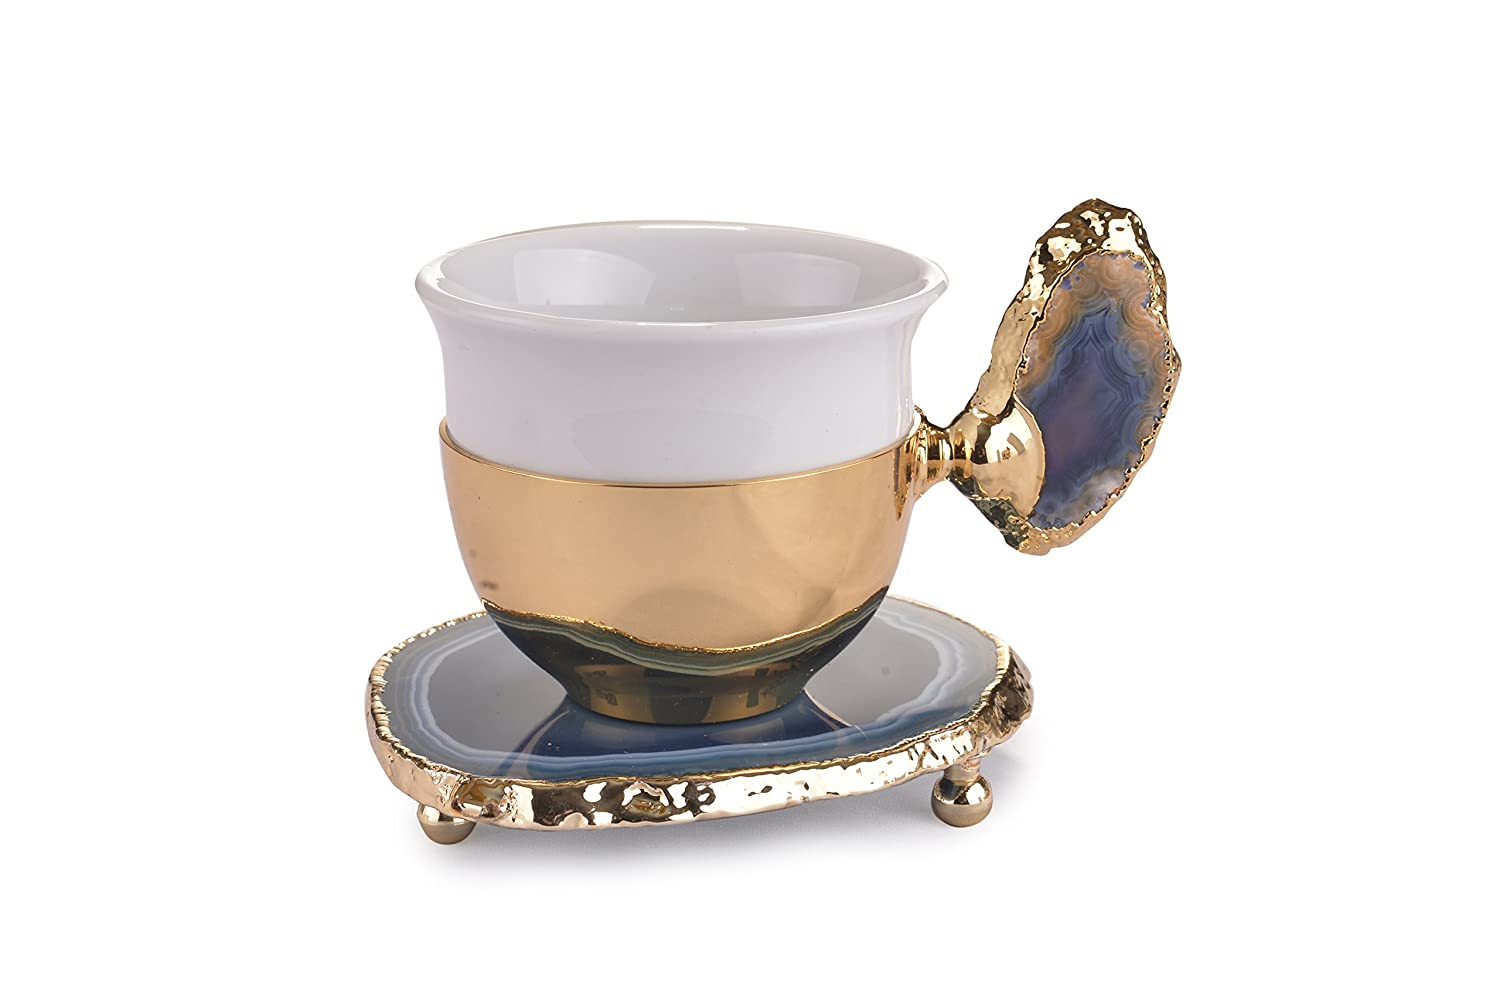 MisterCopper New Premium Turkish Coffee Espresso Cup and Saucer Decoreted with Natural Stone for 1 (NO STONE COLOR OPTION) (Gold)